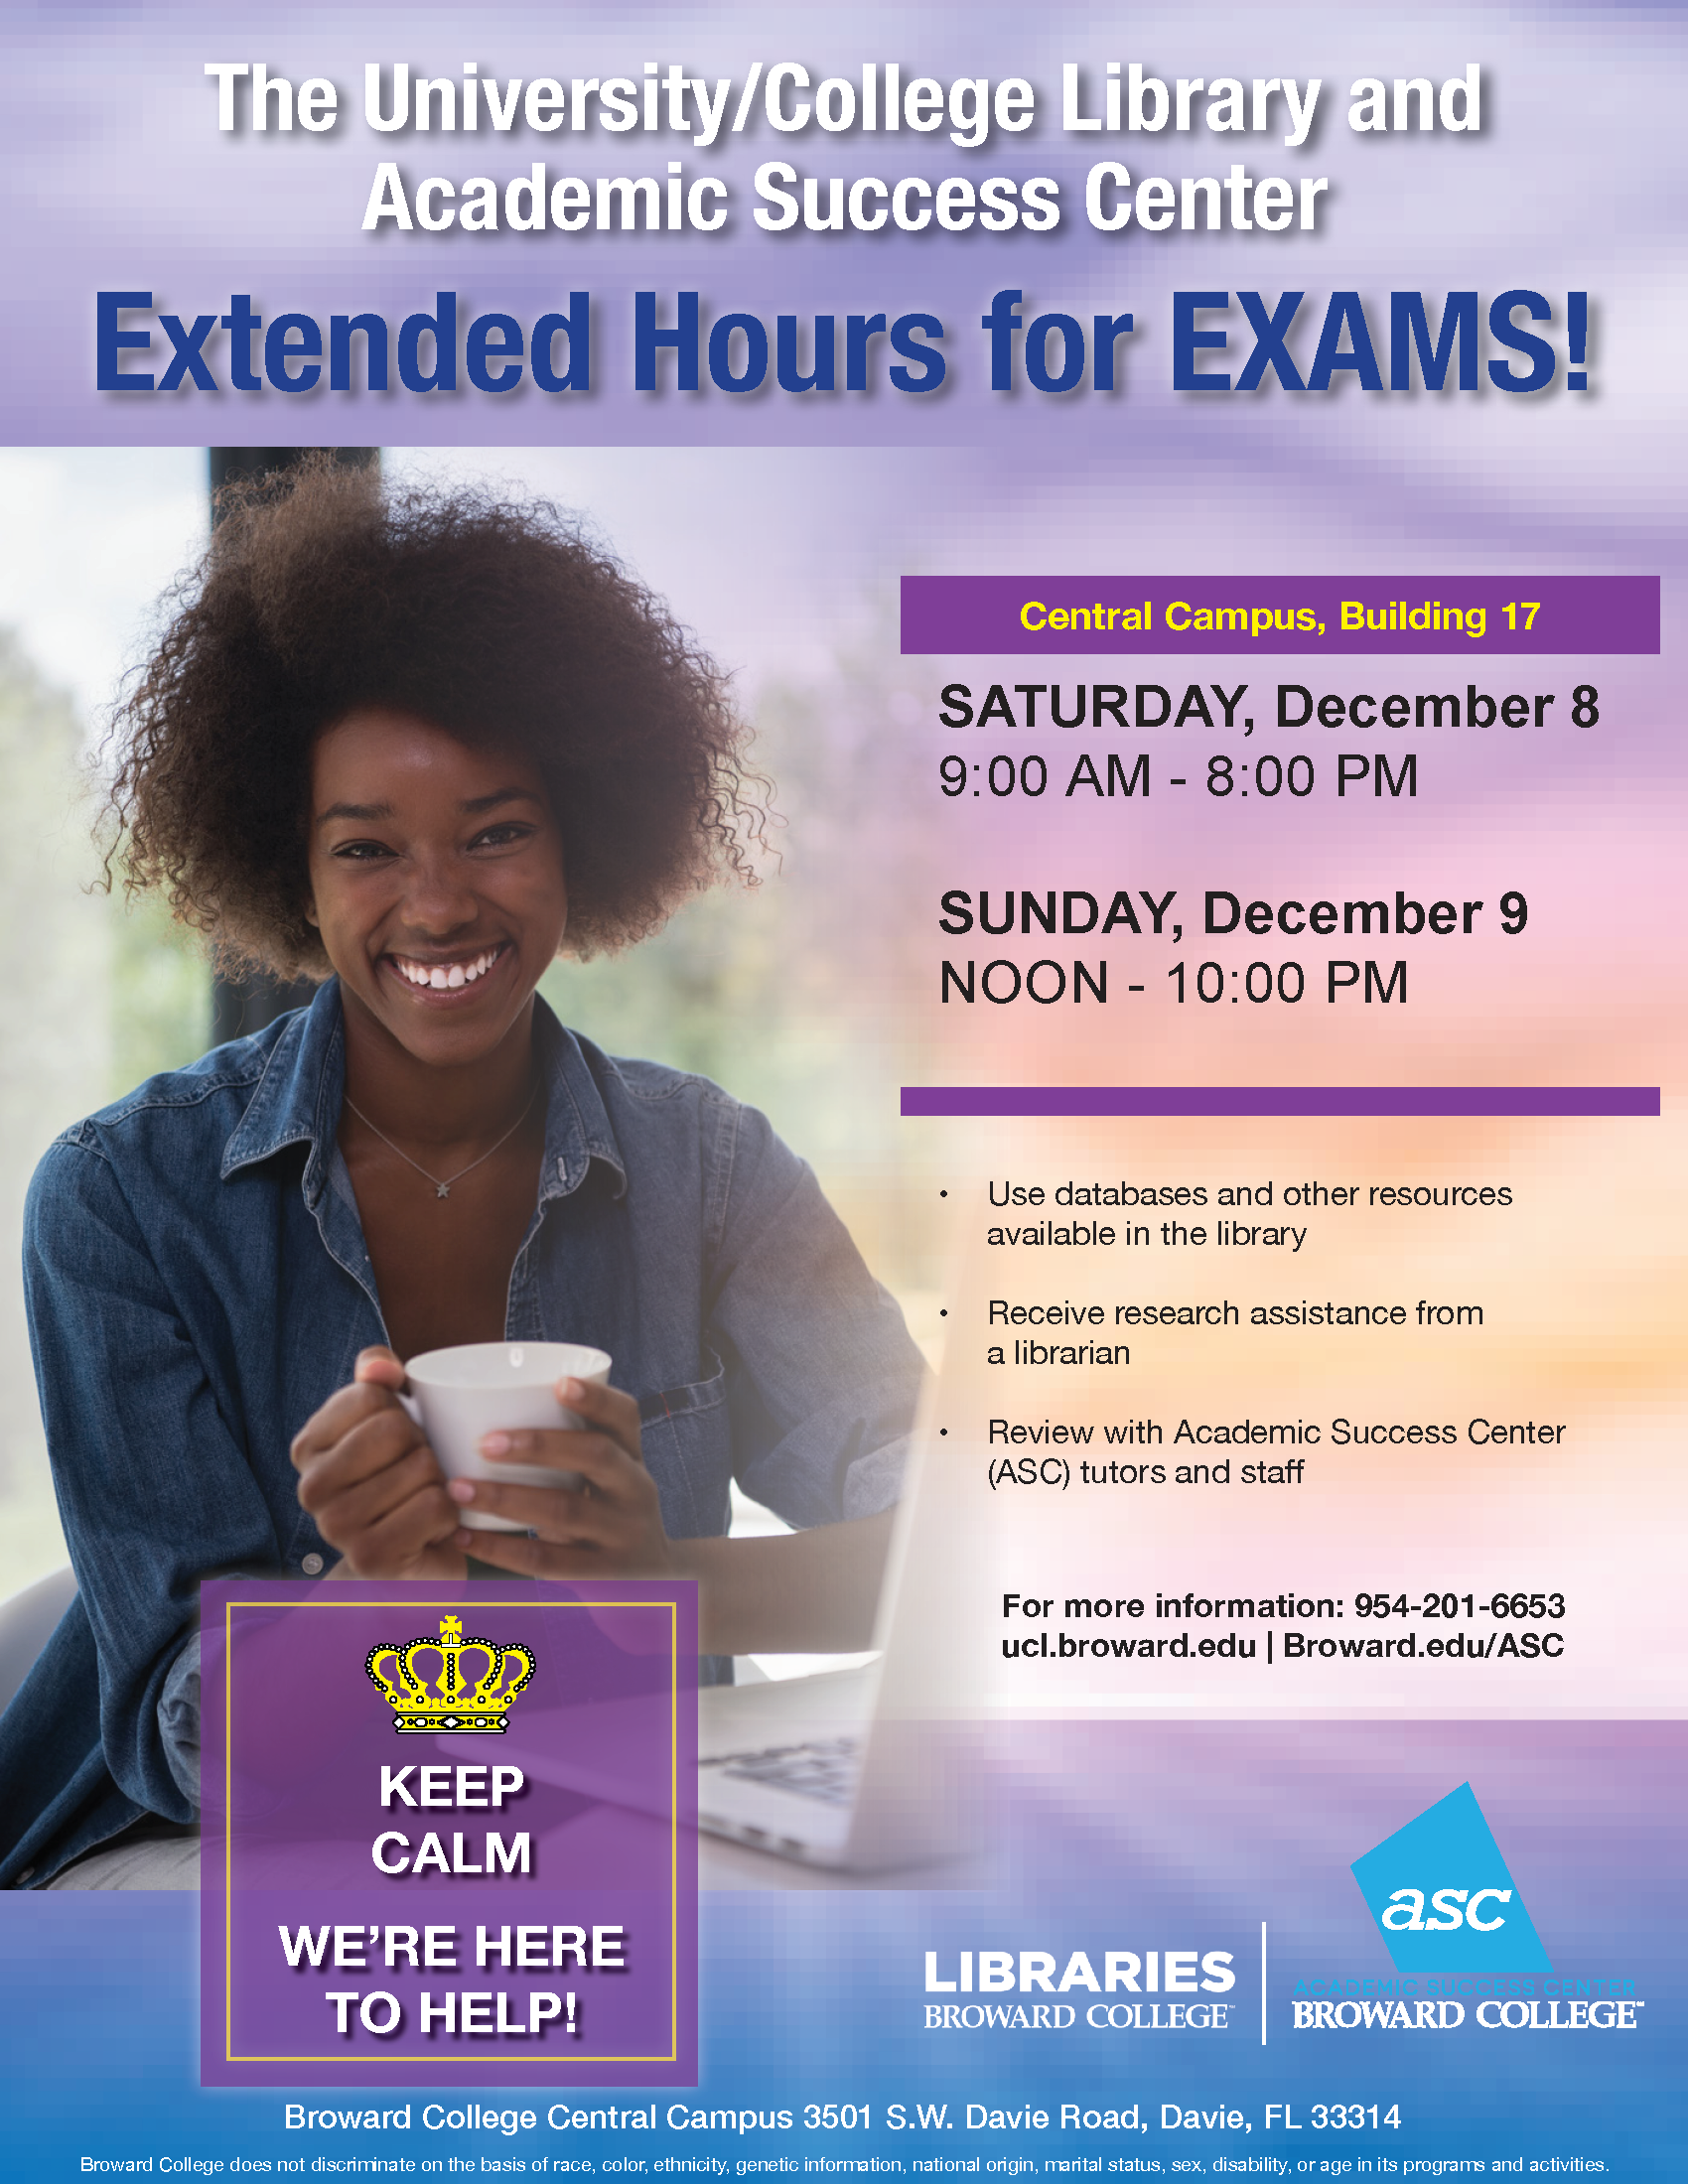 University/College Library Extended hours: Noon - 10pm